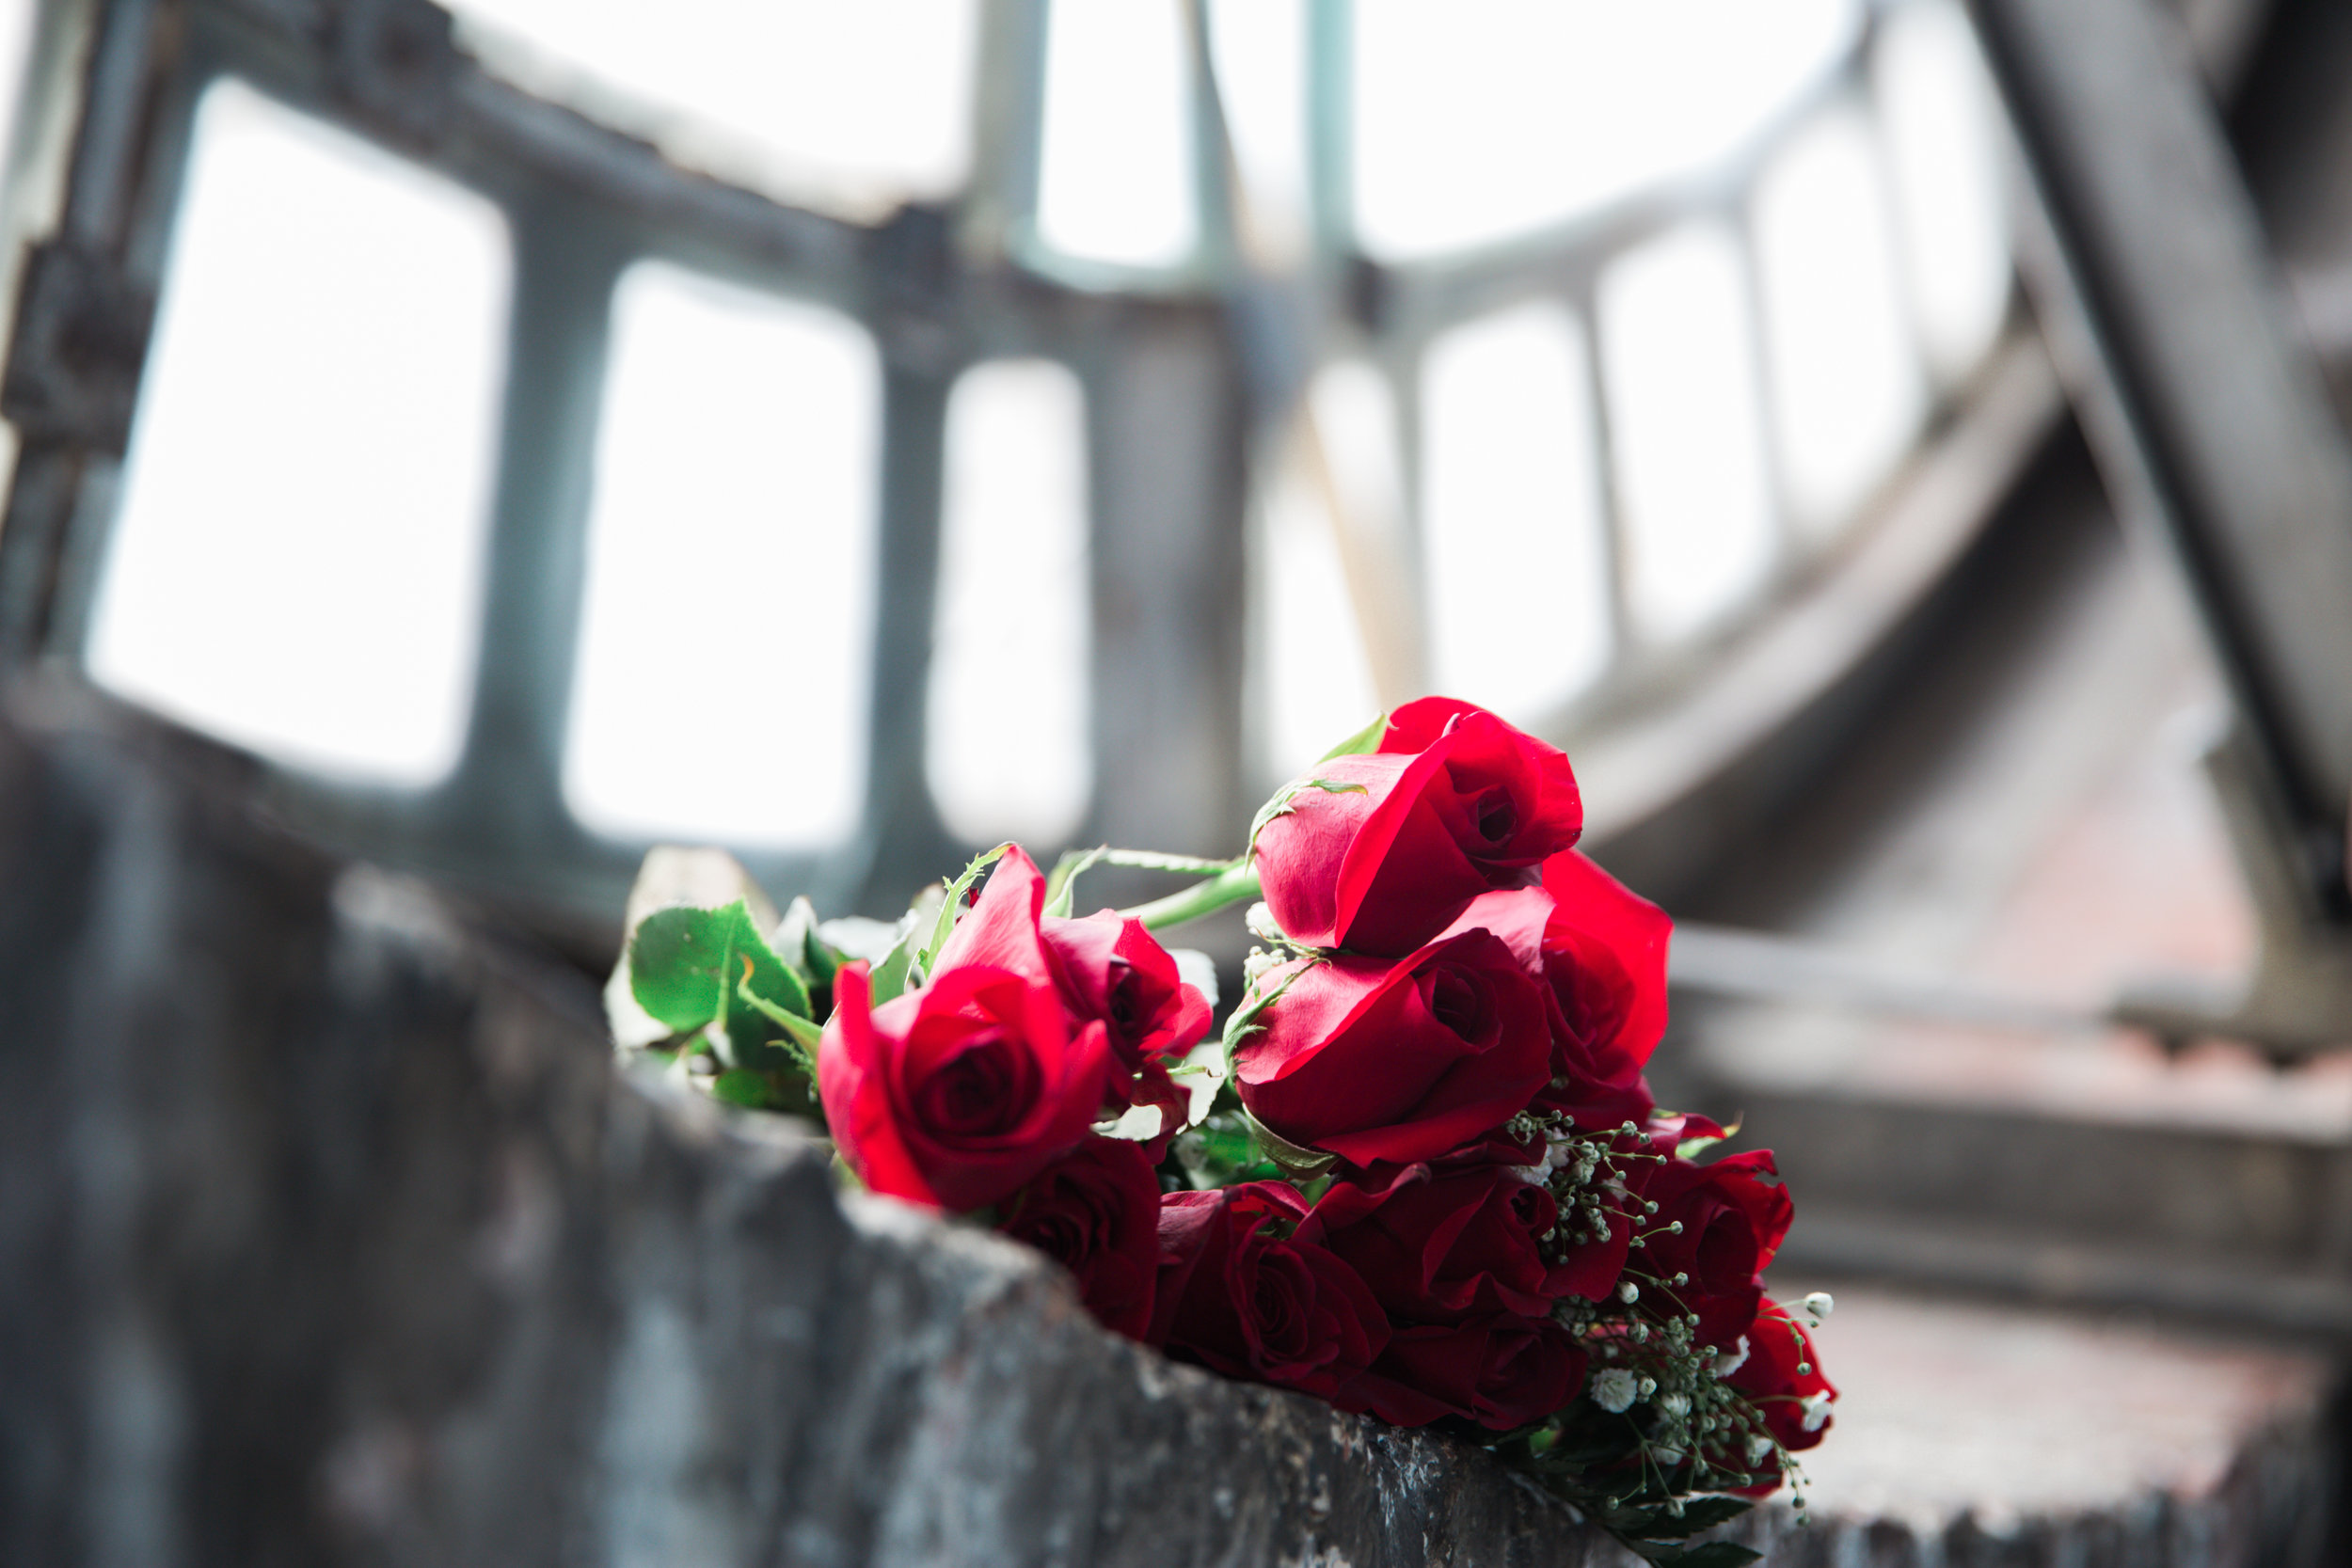 Red Roses Meagan Terrell Bromo Arts Tower Engagement Session Megapixels media Photography-3.jpg